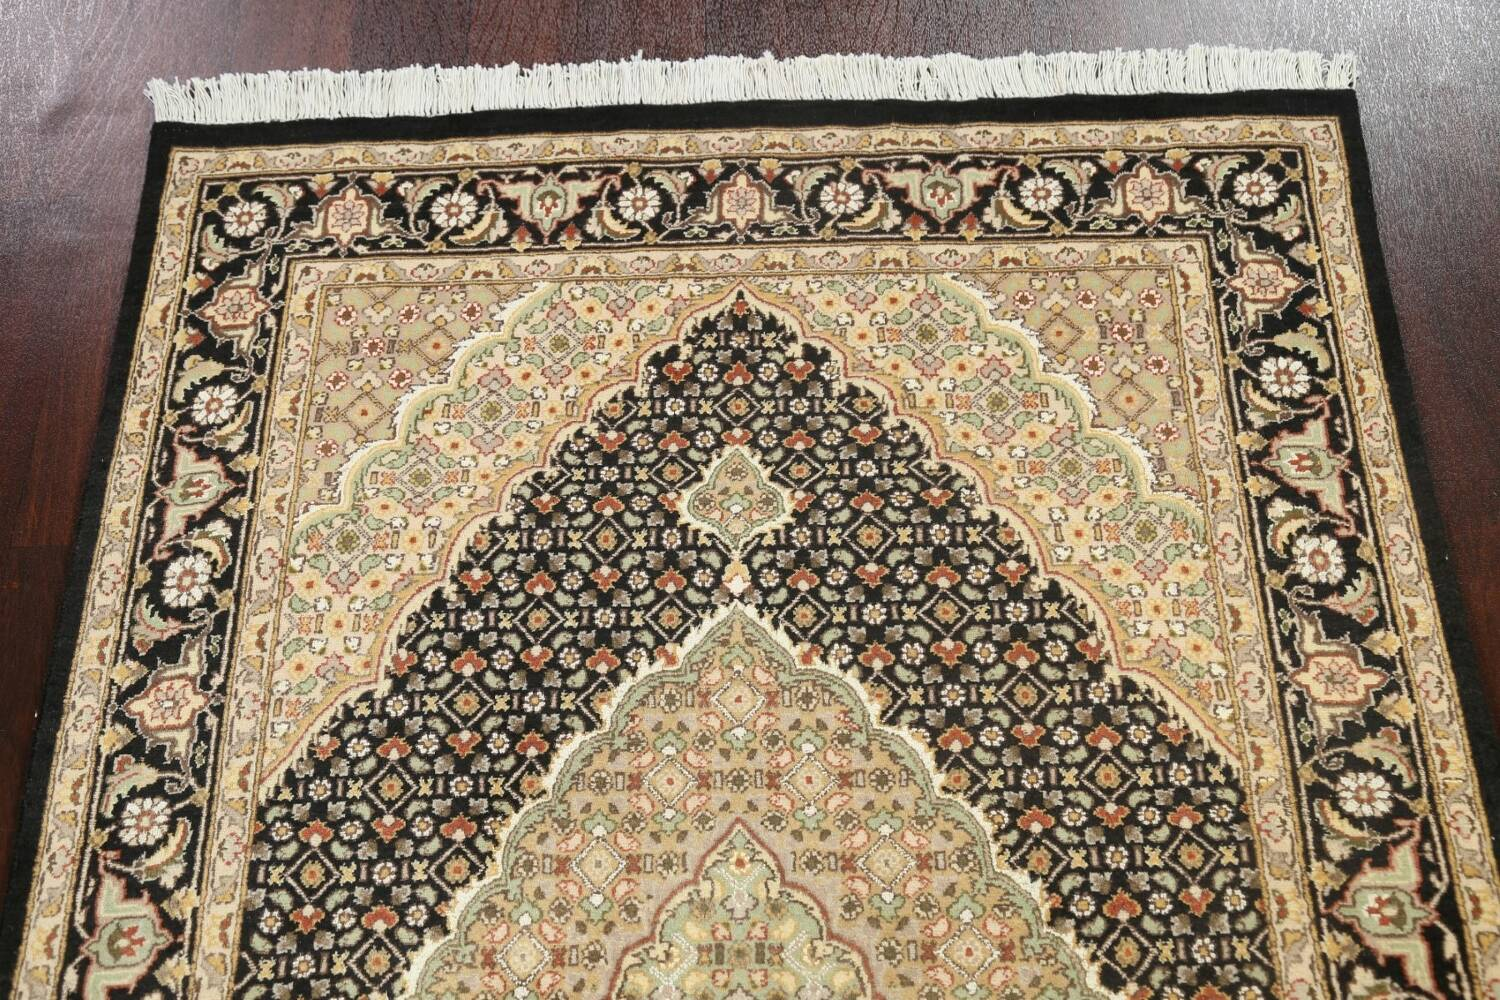 100% Vegetable Dye Tabriz Mahi Oriental Area Rug 4x6 image 9